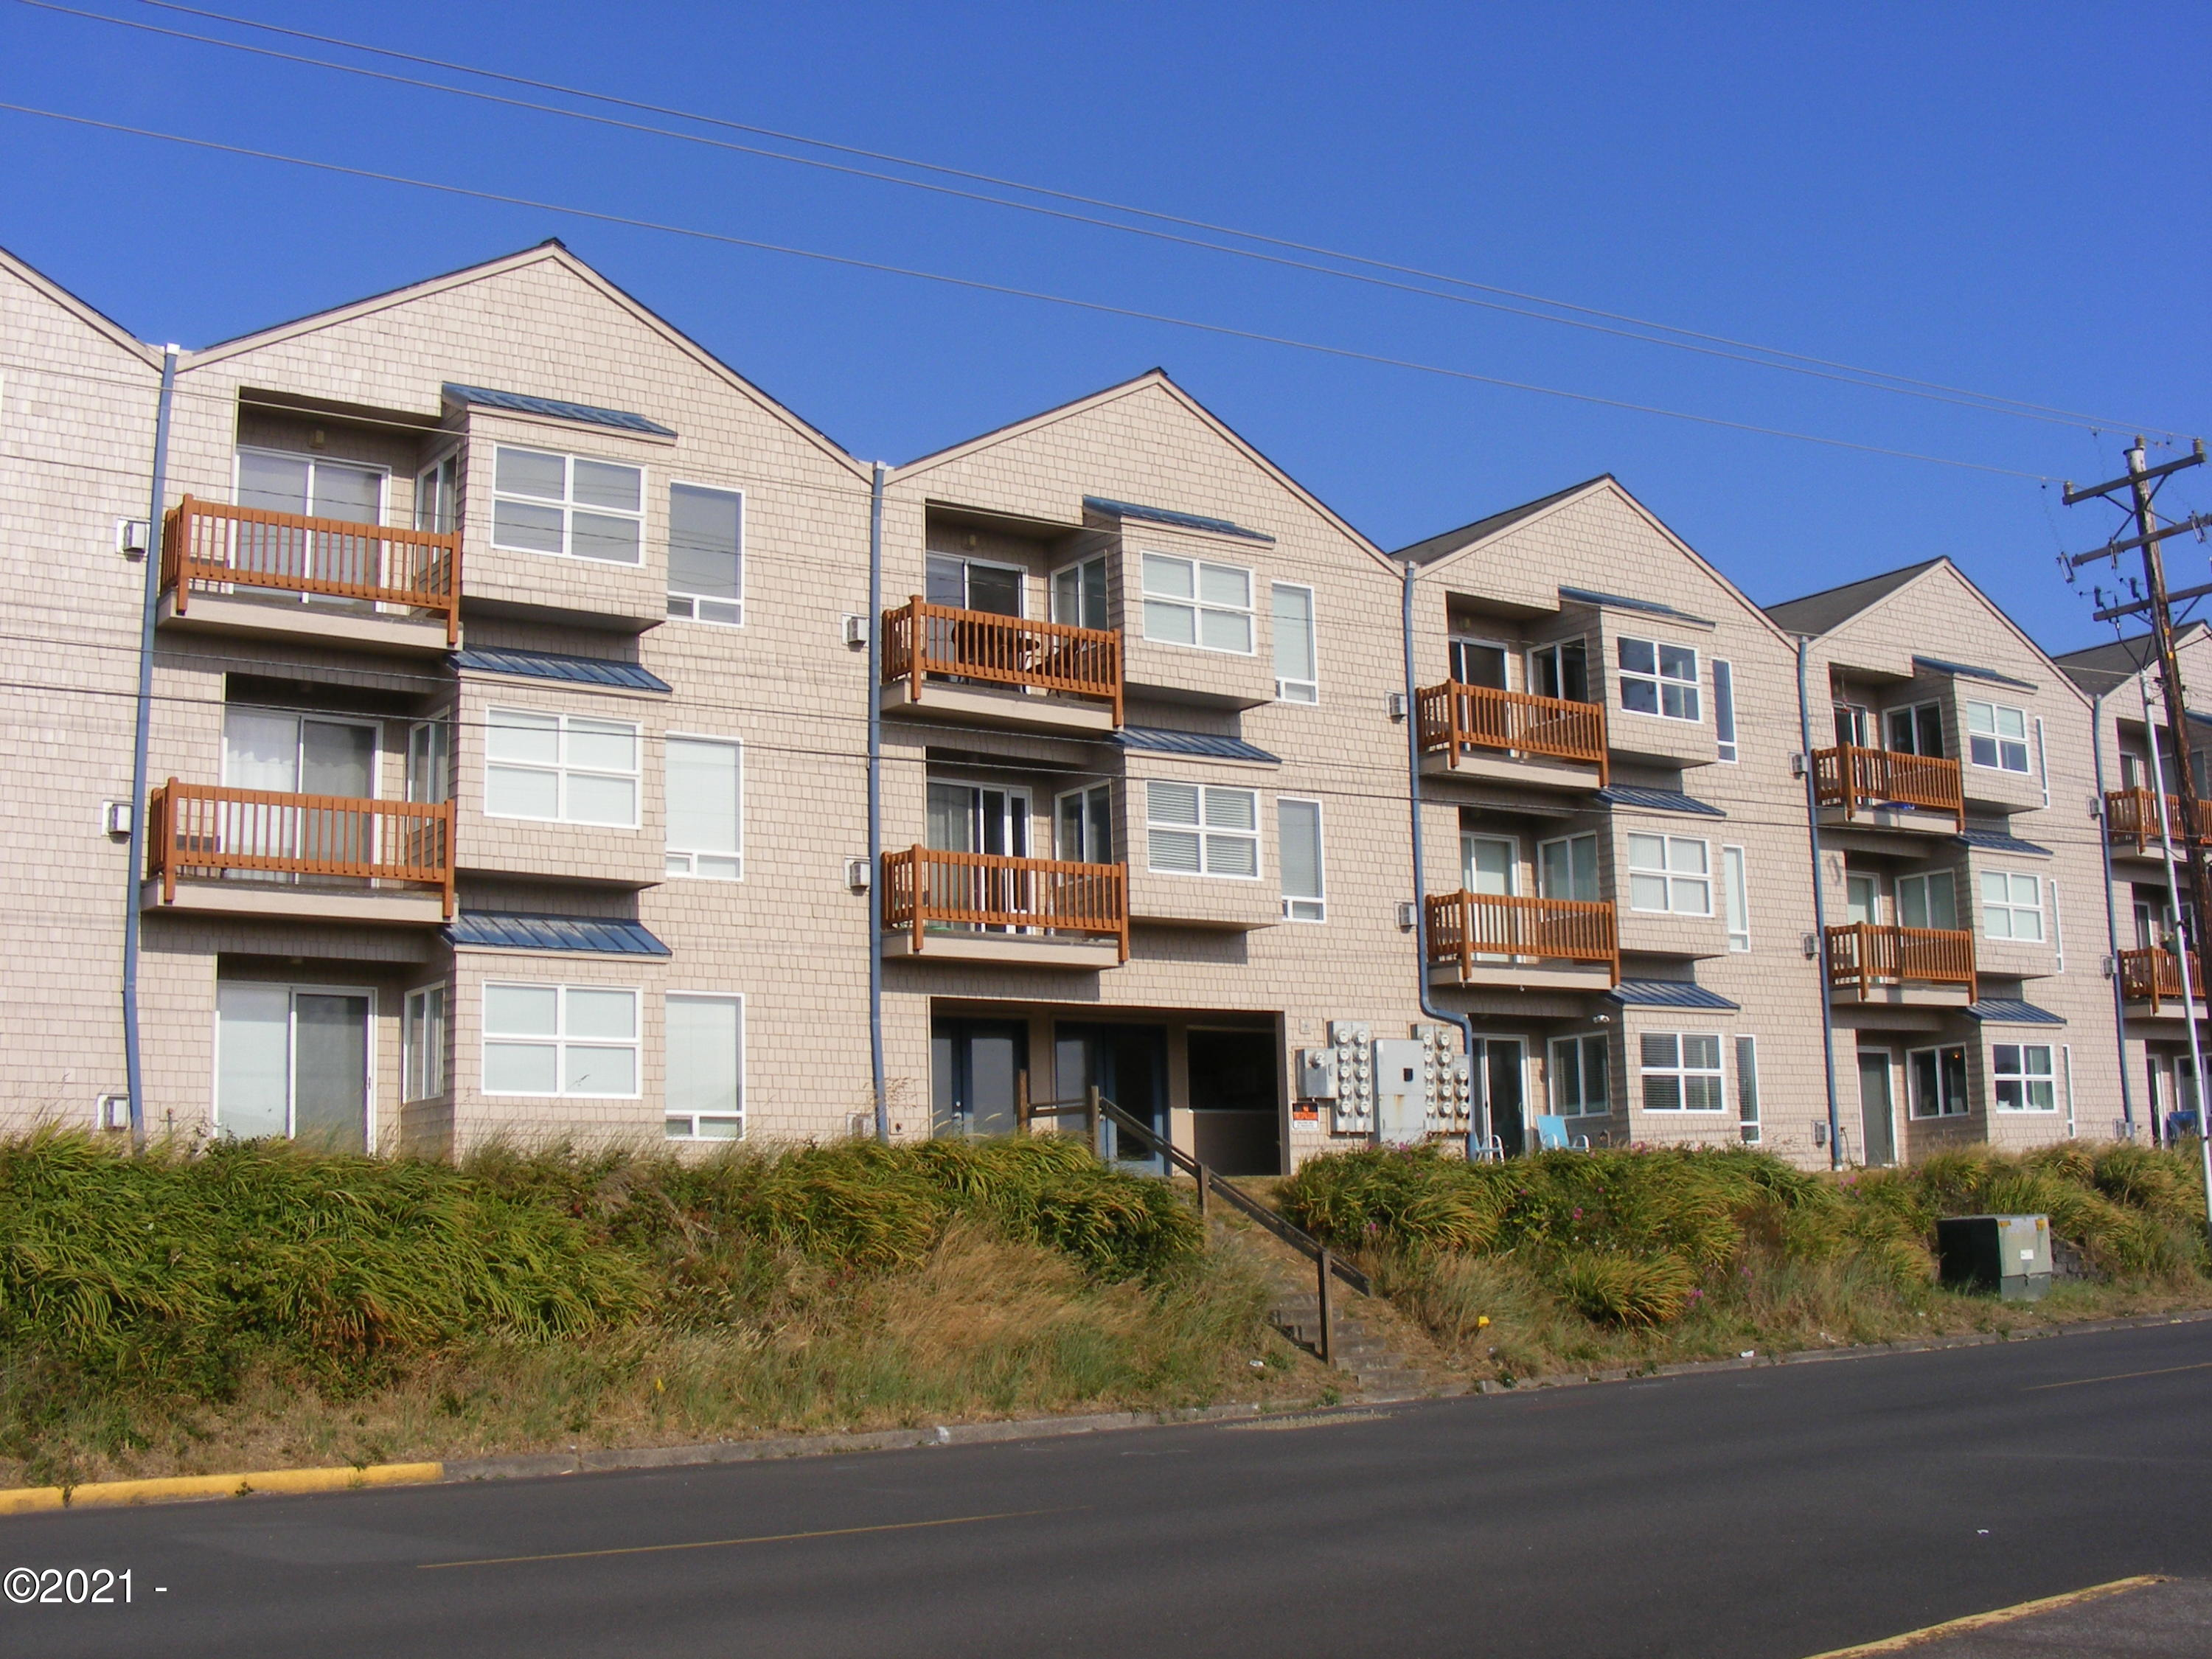 720 SW 6th St, 204M, Newport, OR 97365 - West exterior